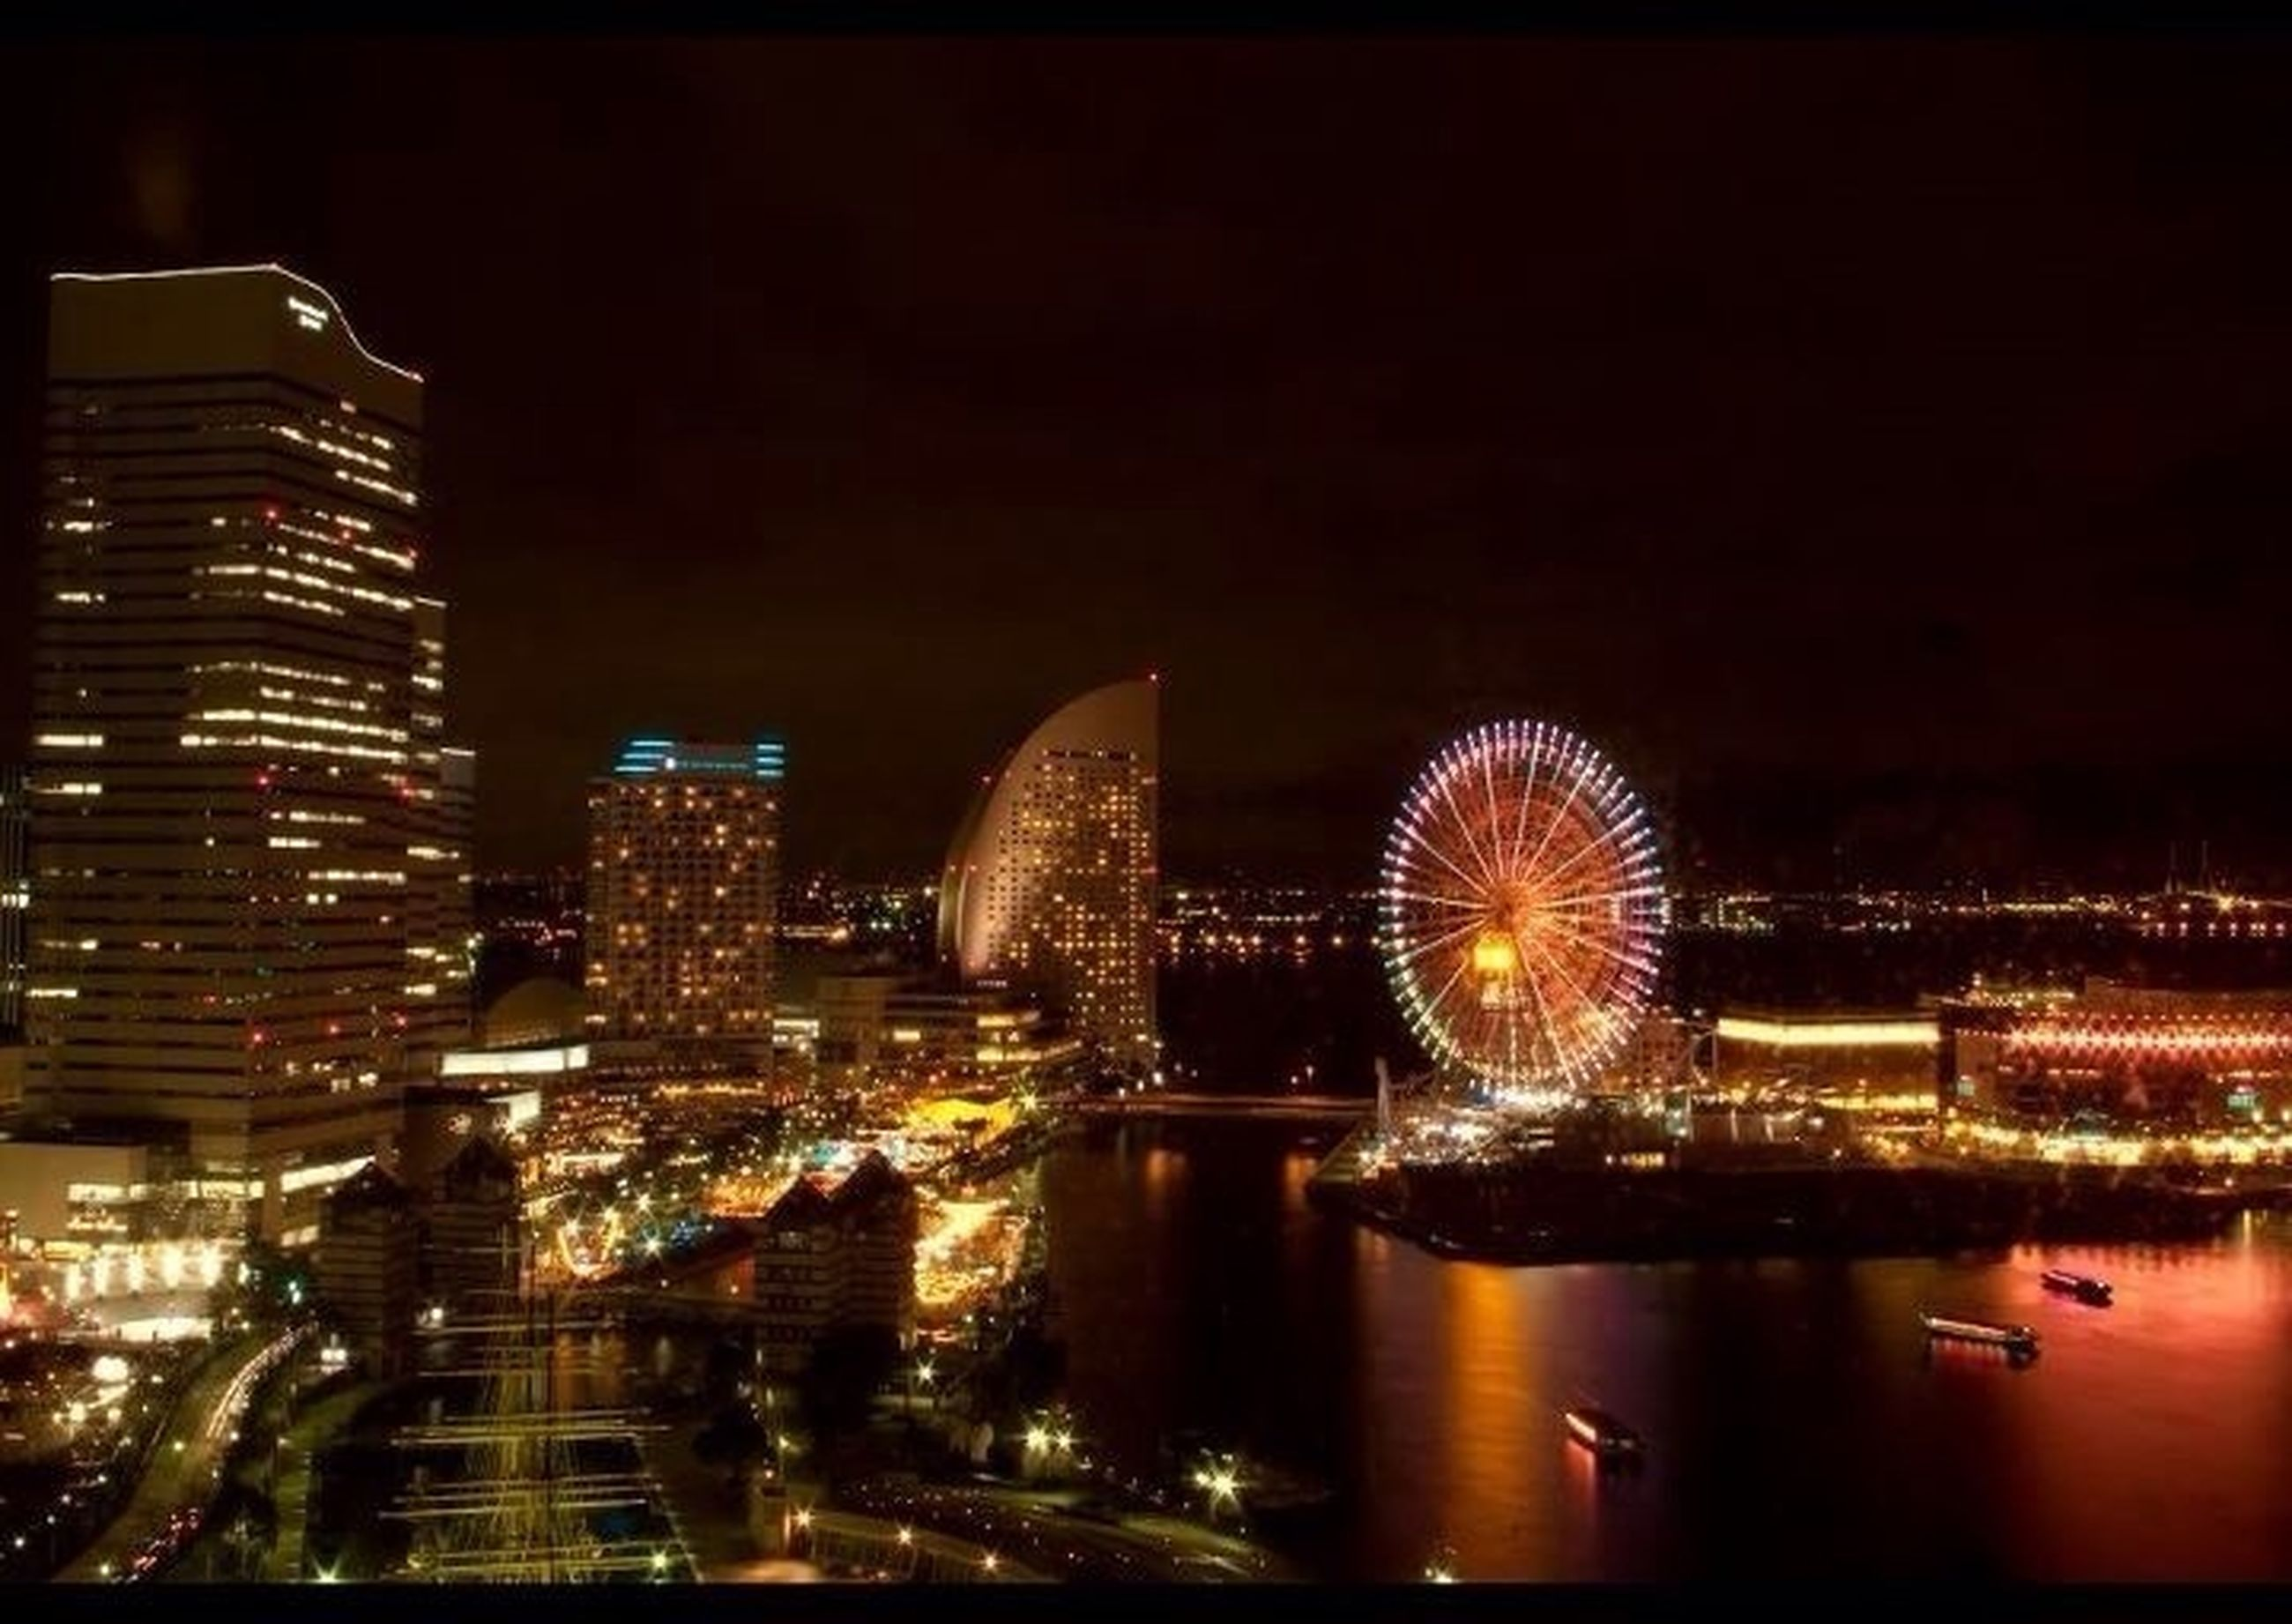 illuminated, night, city, architecture, building exterior, built structure, water, cityscape, reflection, river, modern, waterfront, city life, skyscraper, travel destinations, ferris wheel, capital cities, sky, long exposure, clear sky